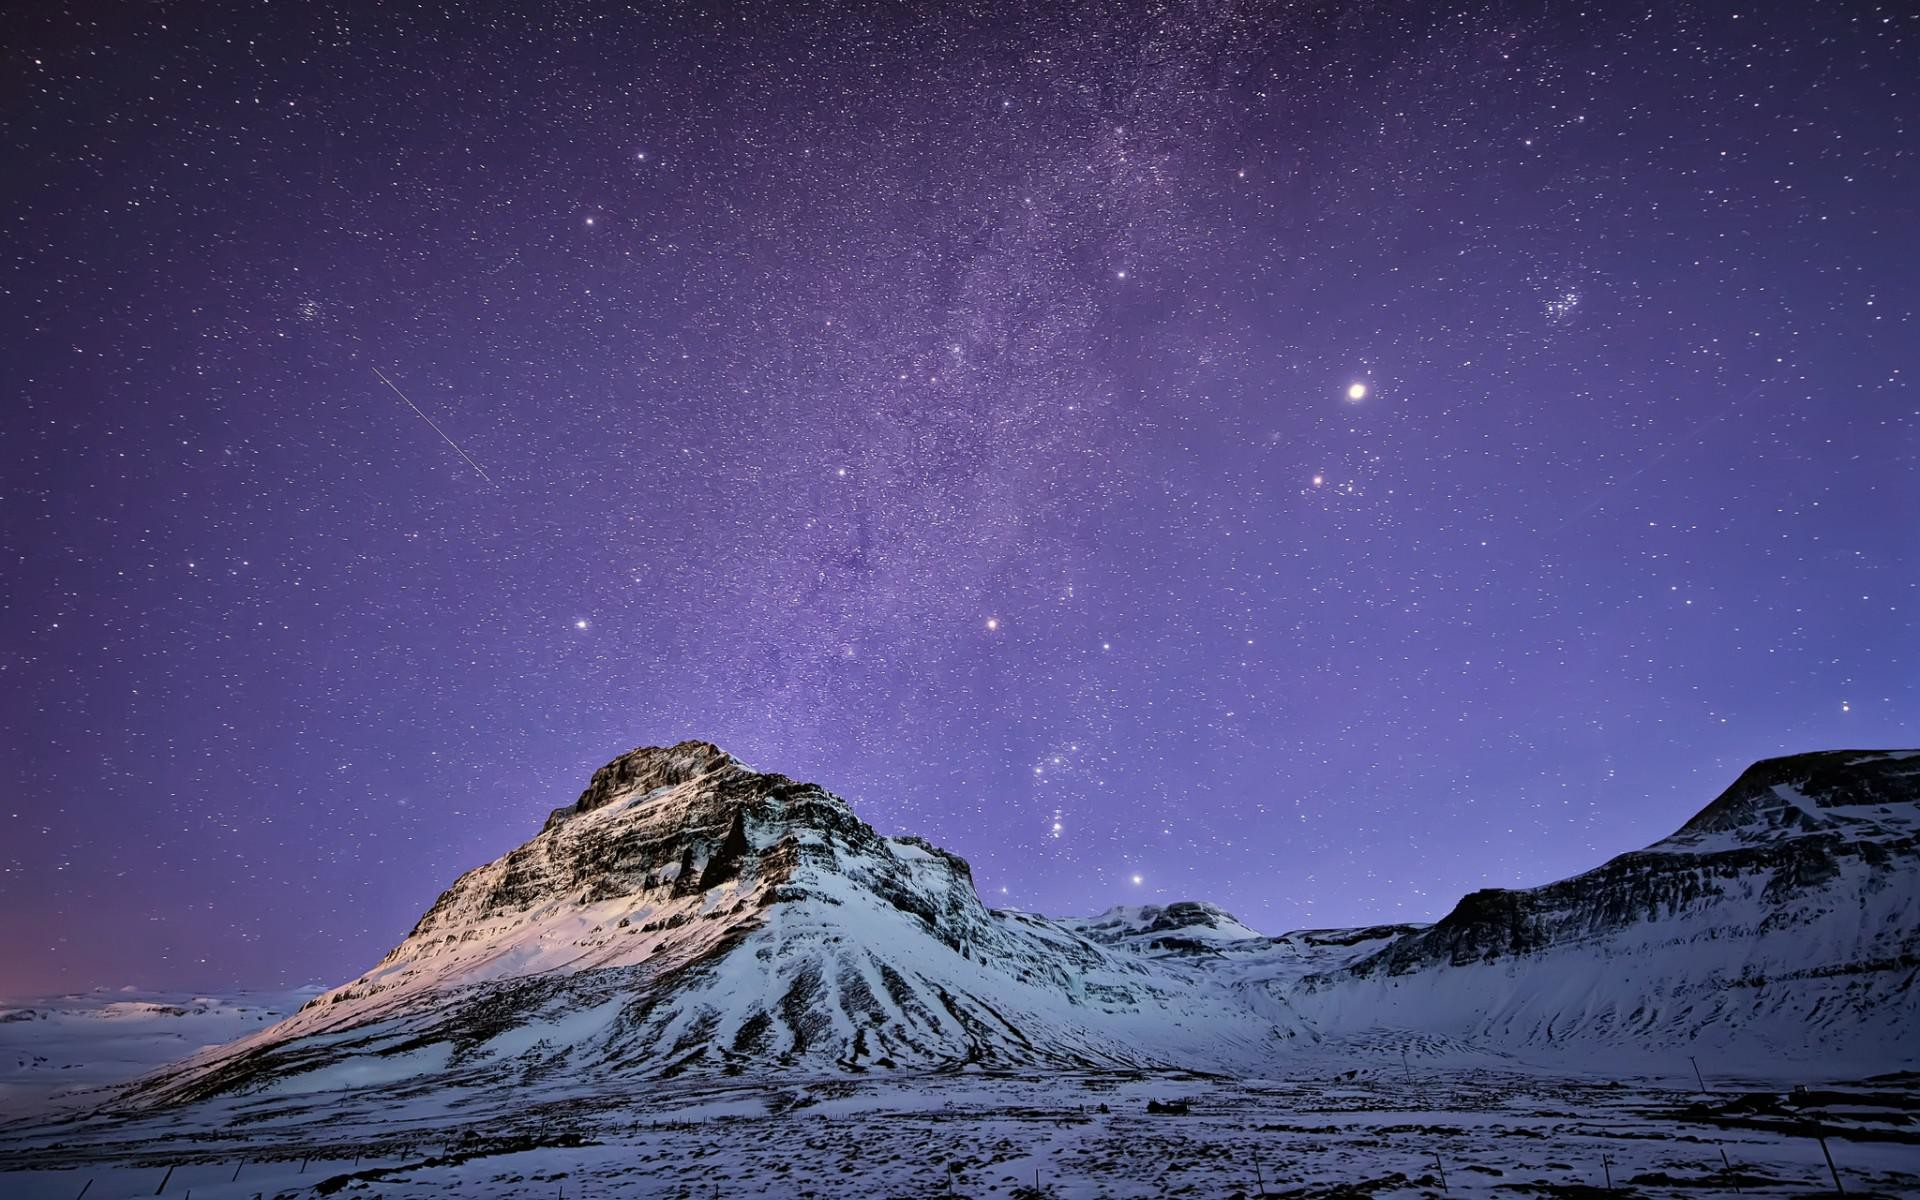 1920x1200 STARRY STARRY NIGHT WALLPAPER - (#141774) - HD Wallpapers .